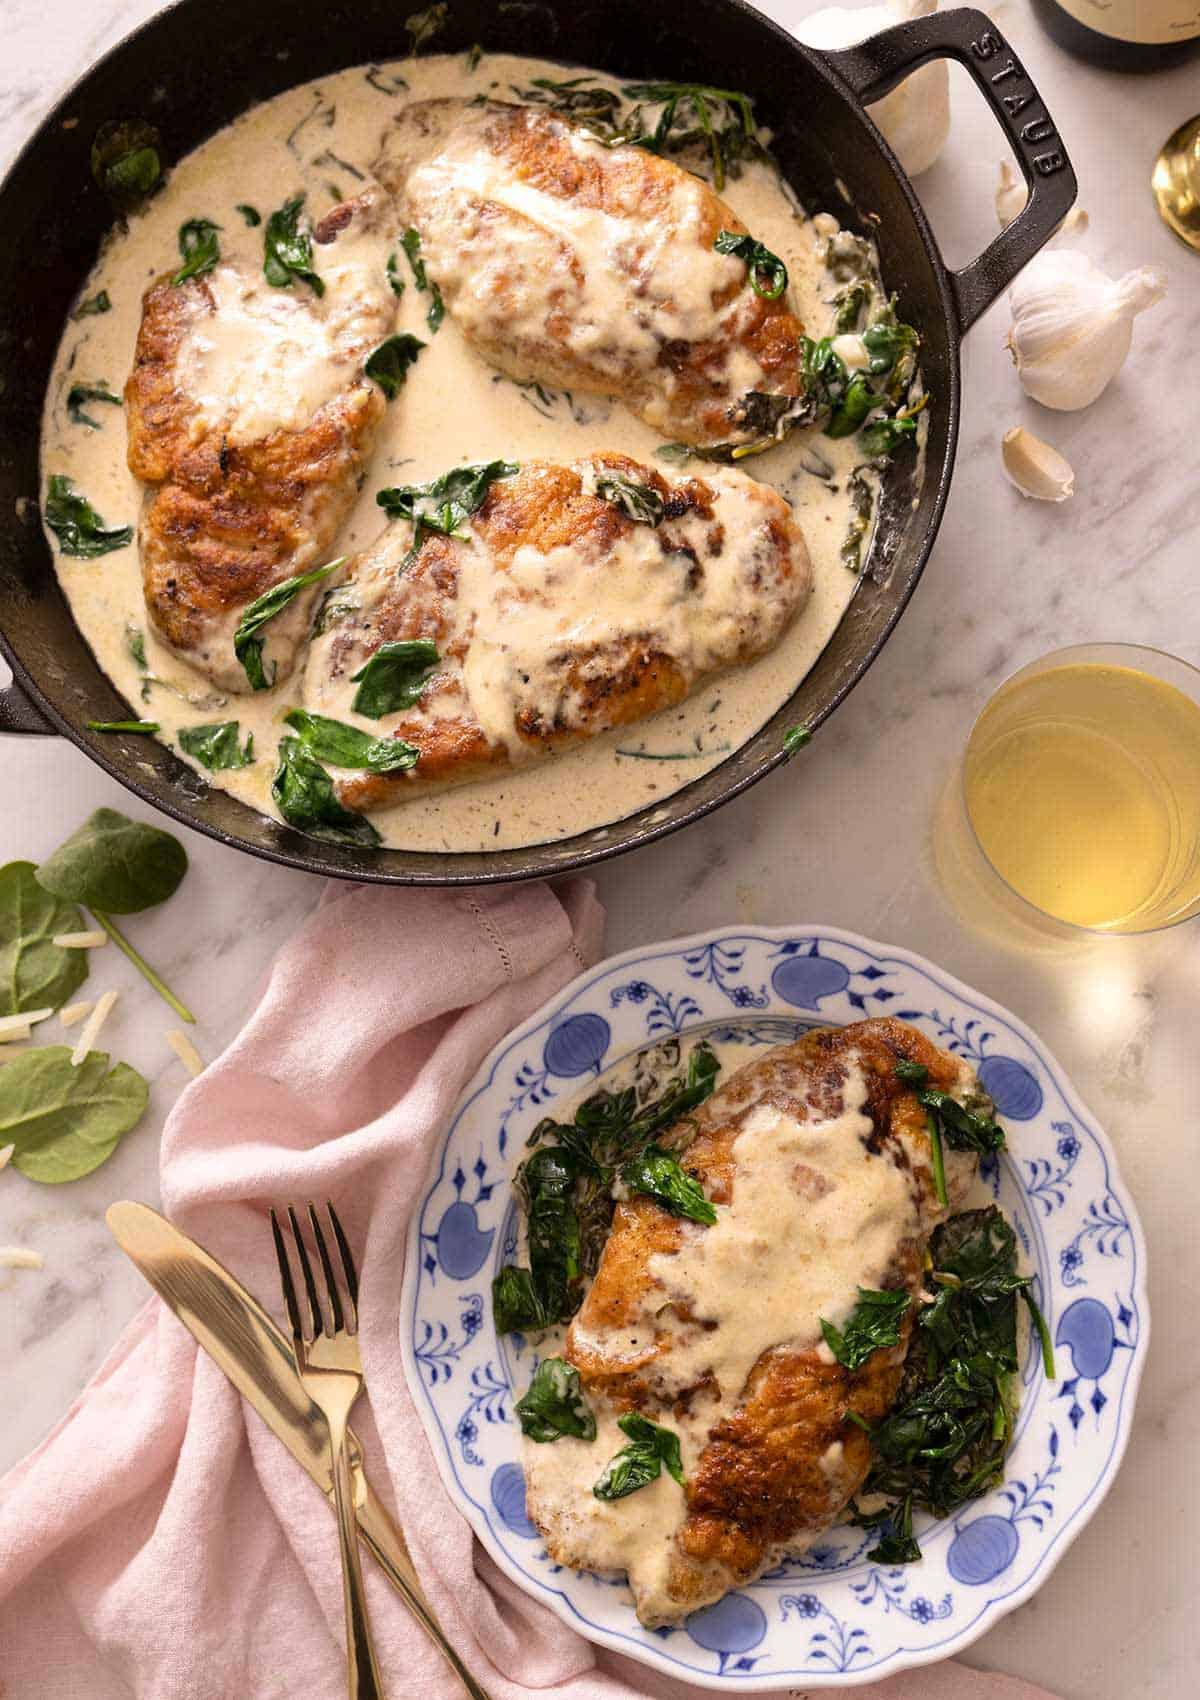 Overhead view of a braiser containing chicken florentine with a serving plated up beside it.